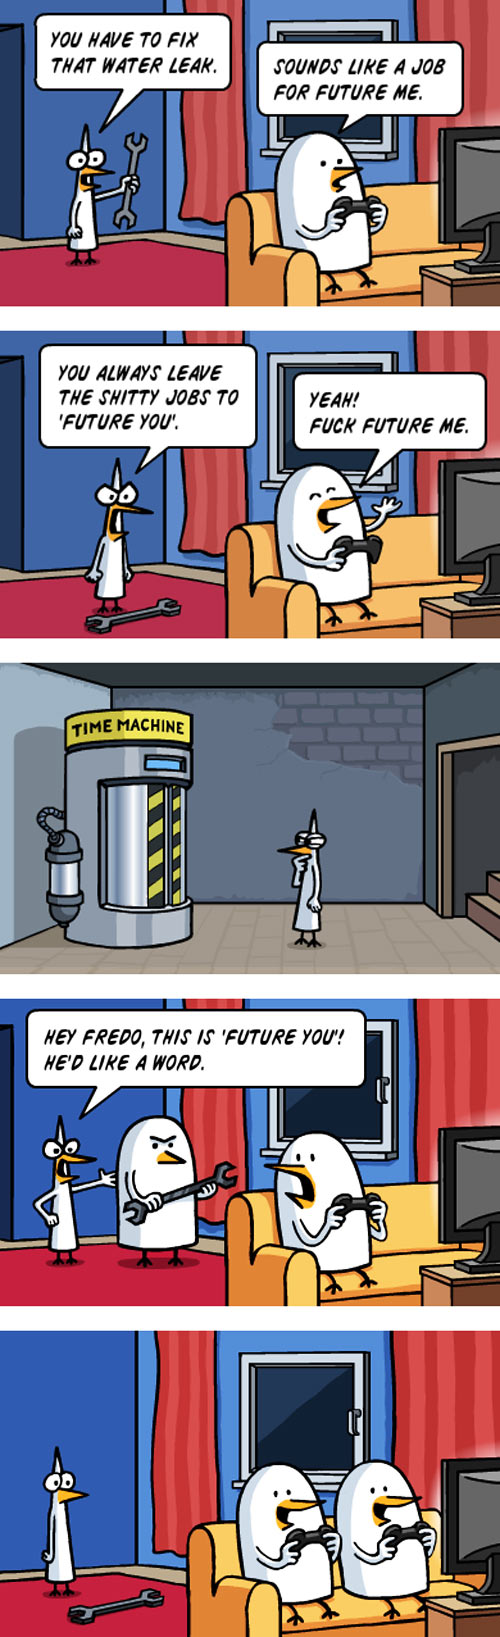 funny-picture-cartoon-future-you-work